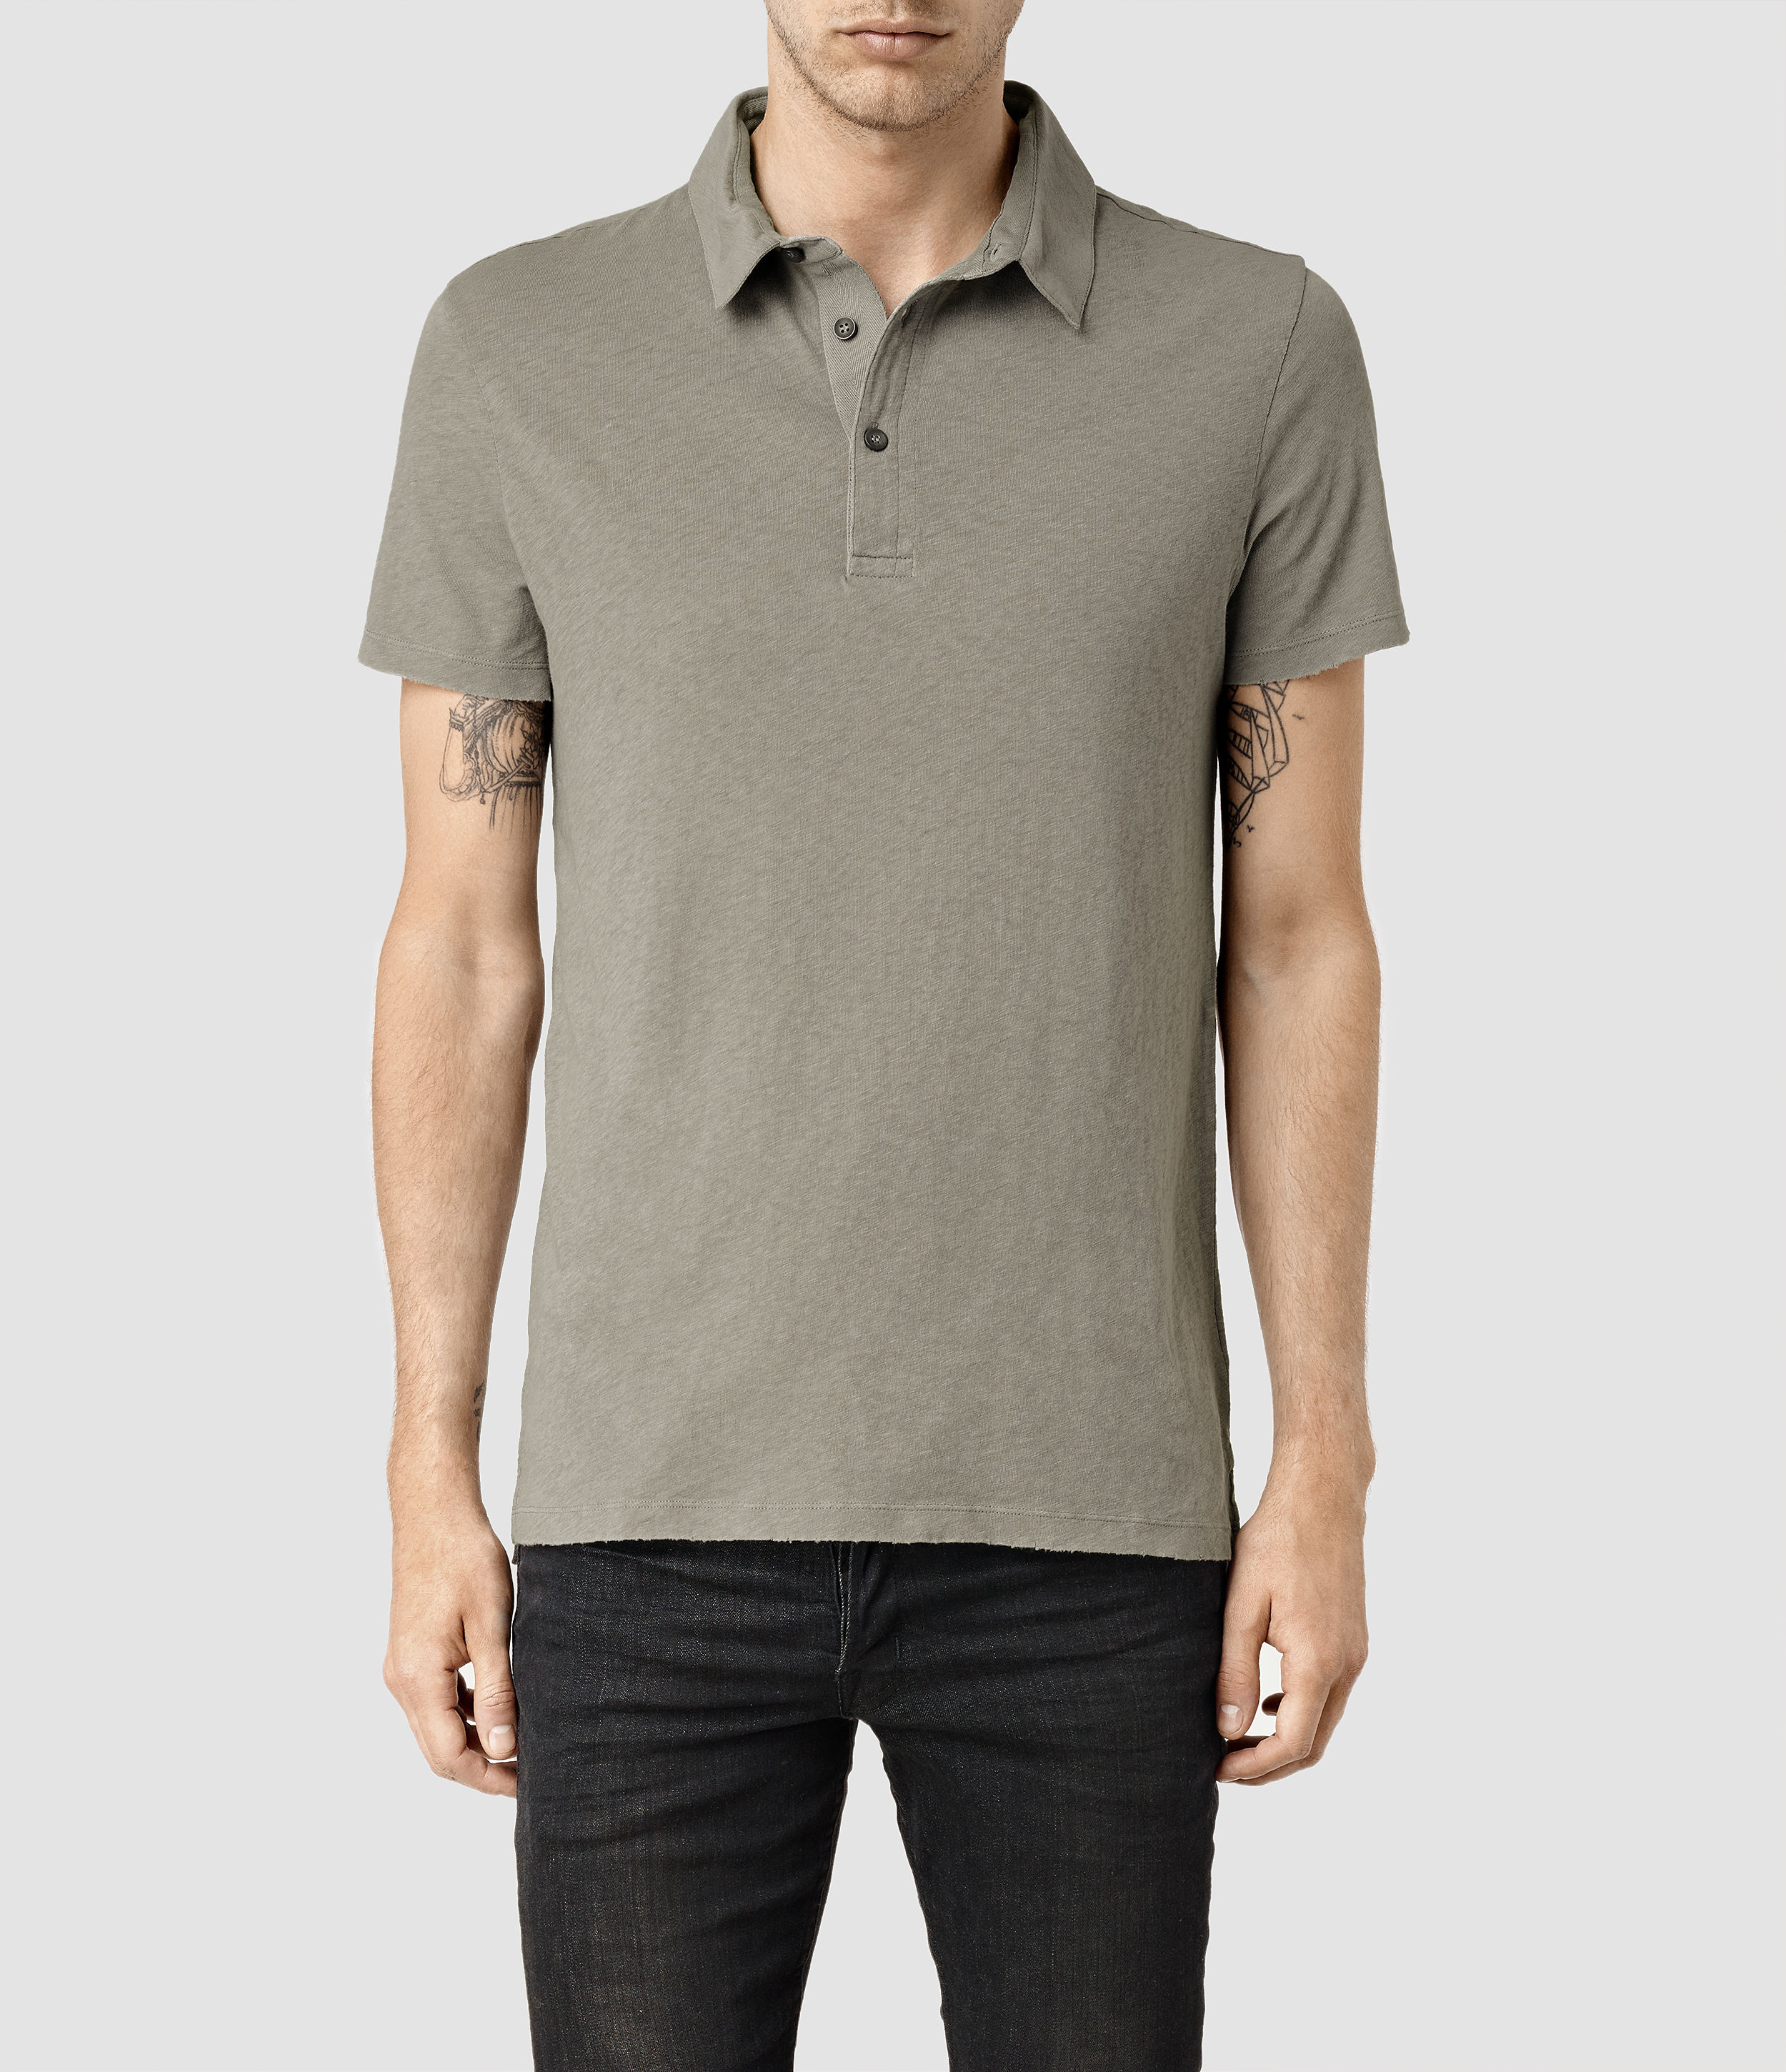 Allsaints Ground Polo In Gray For Men Lyst